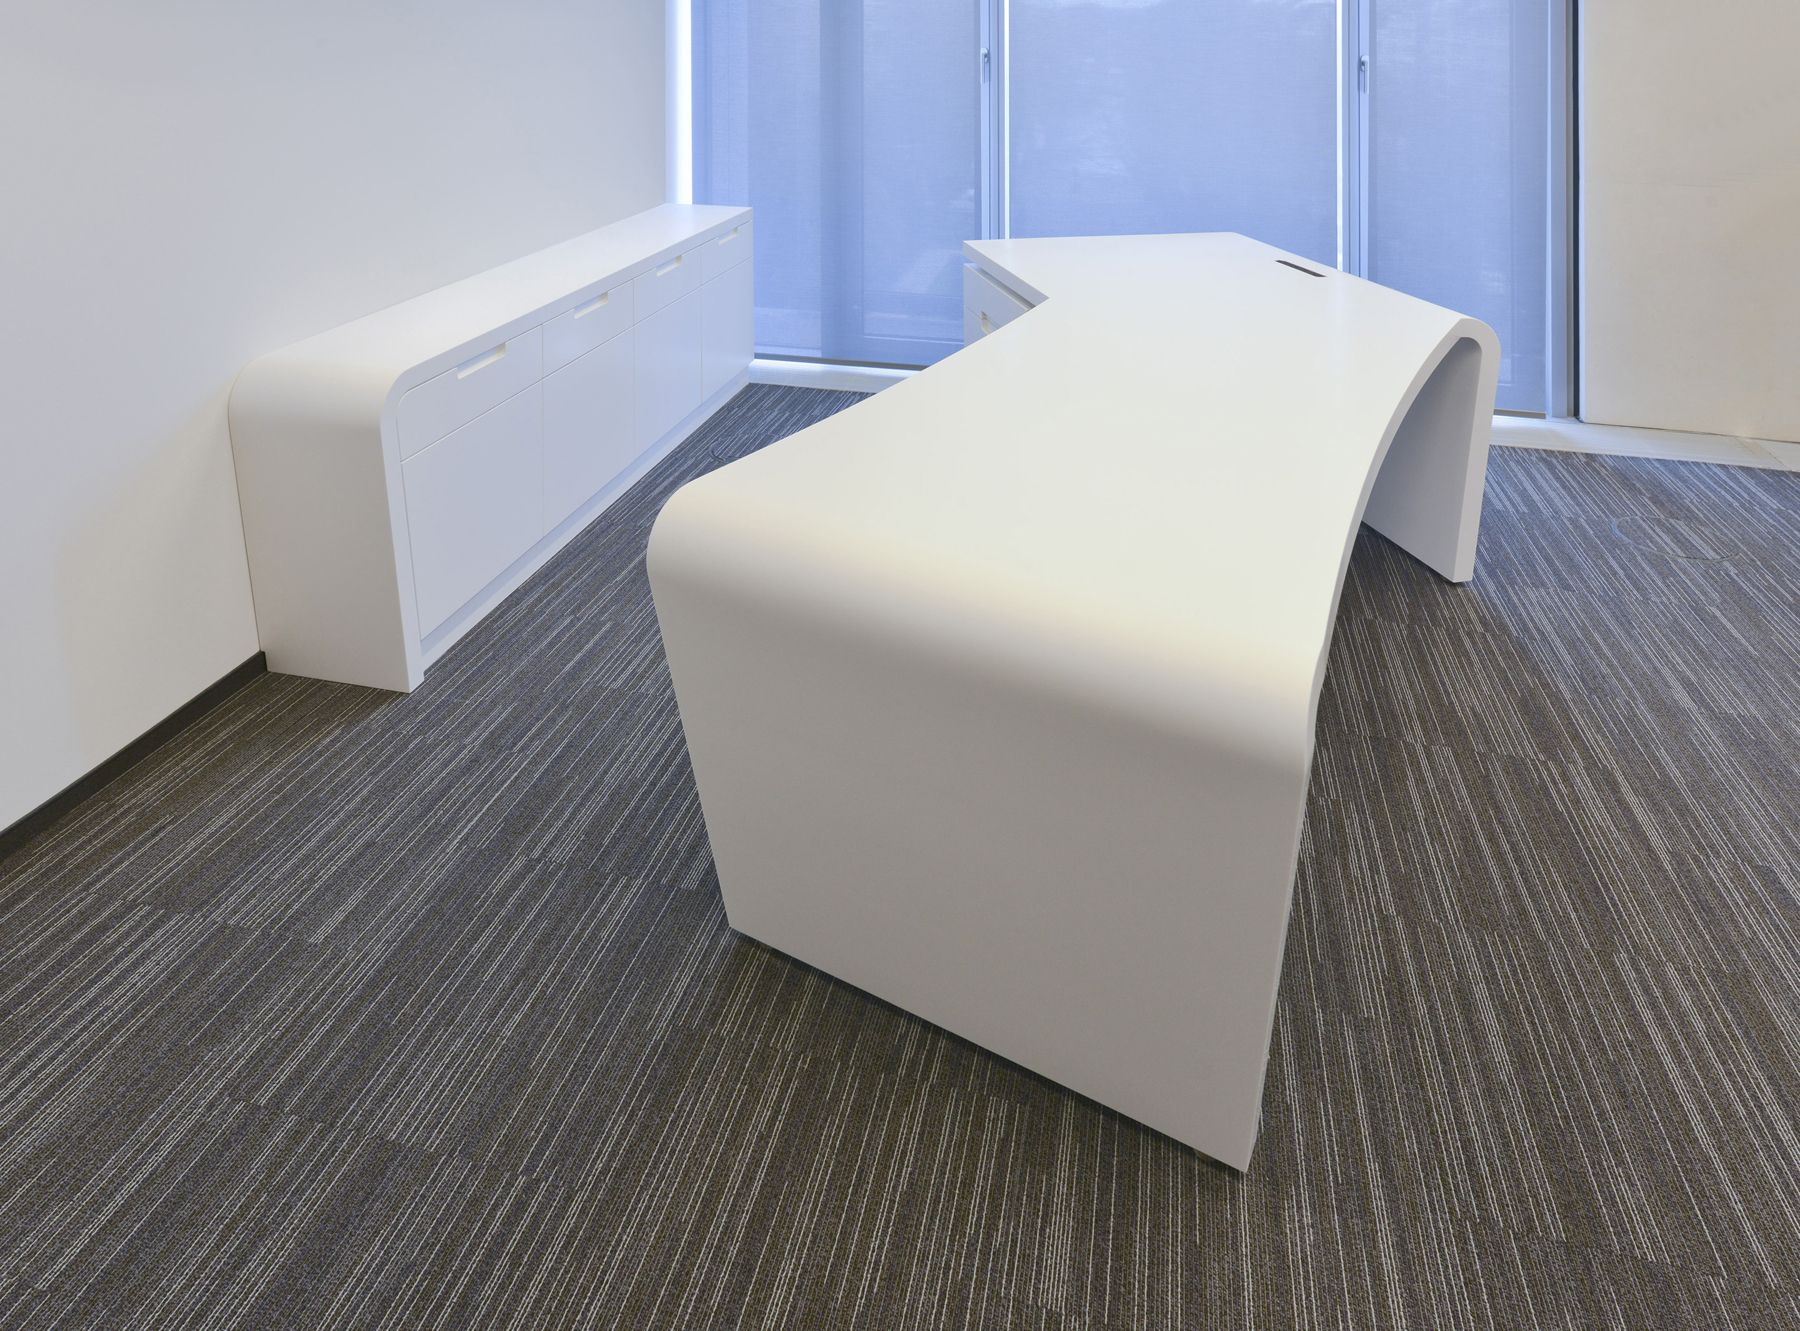 Desk made in #HIMACS at CCD CardioCentrum (Dusseldorf). ©bap+ ...